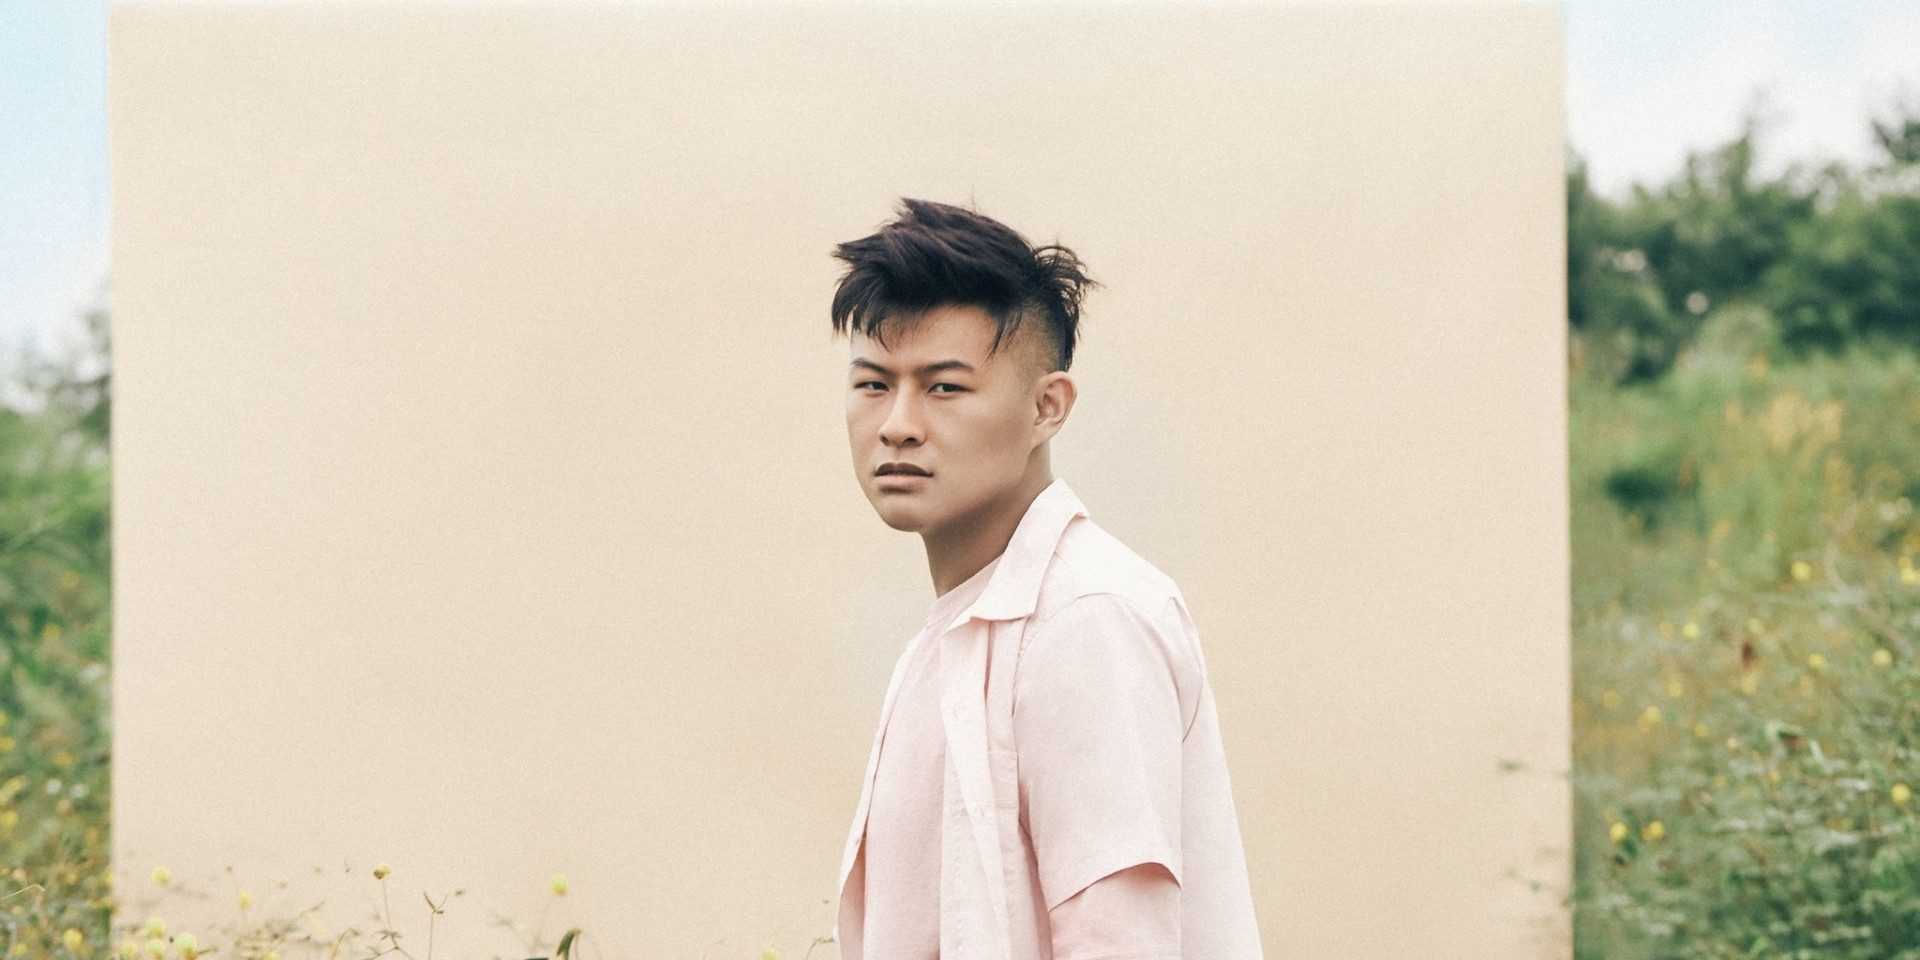 LEW releases gorgeous new song 'Short Story Long' - listen""